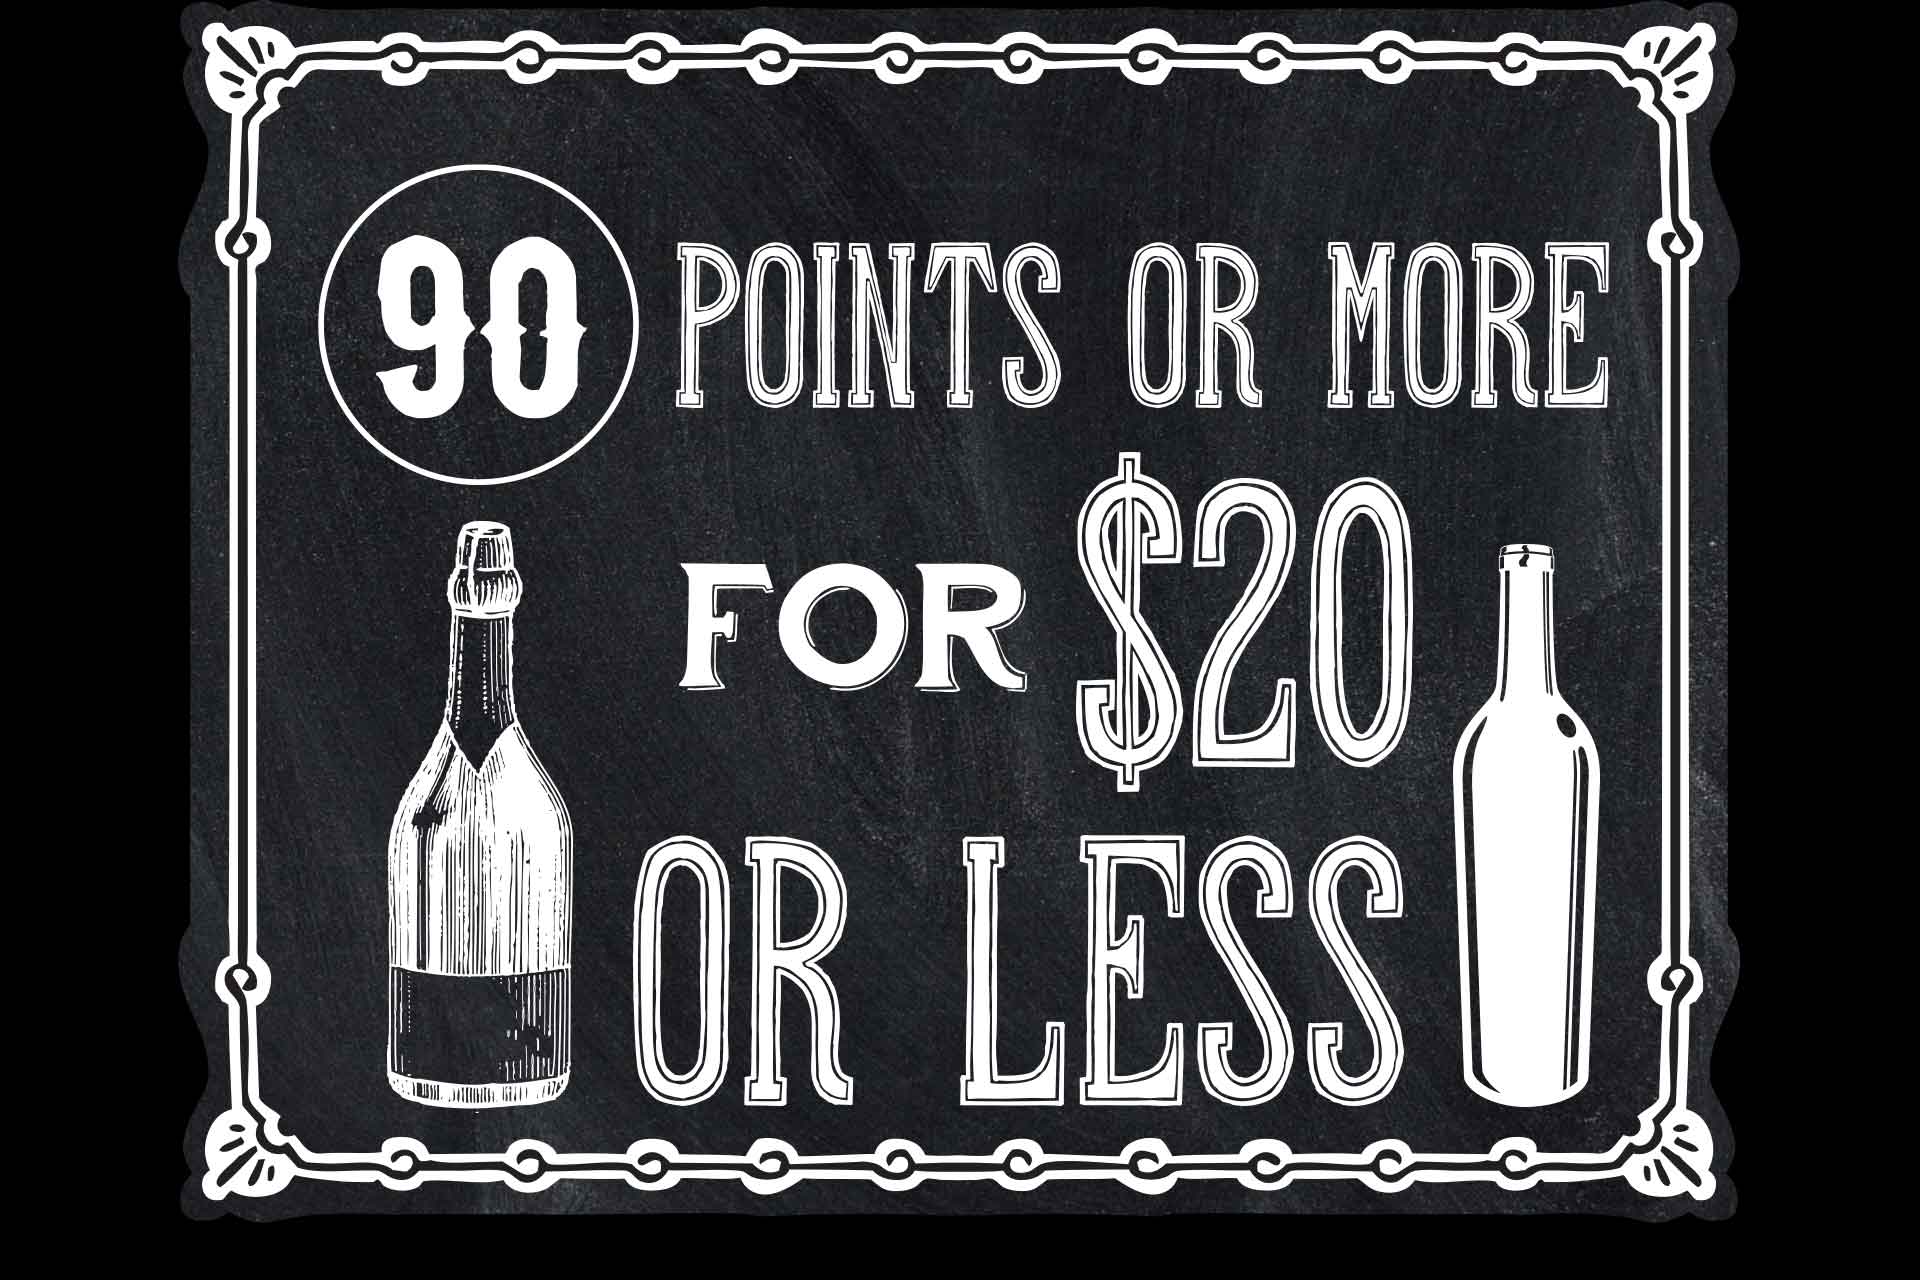 90 Pint Wines or More for $20 or Less